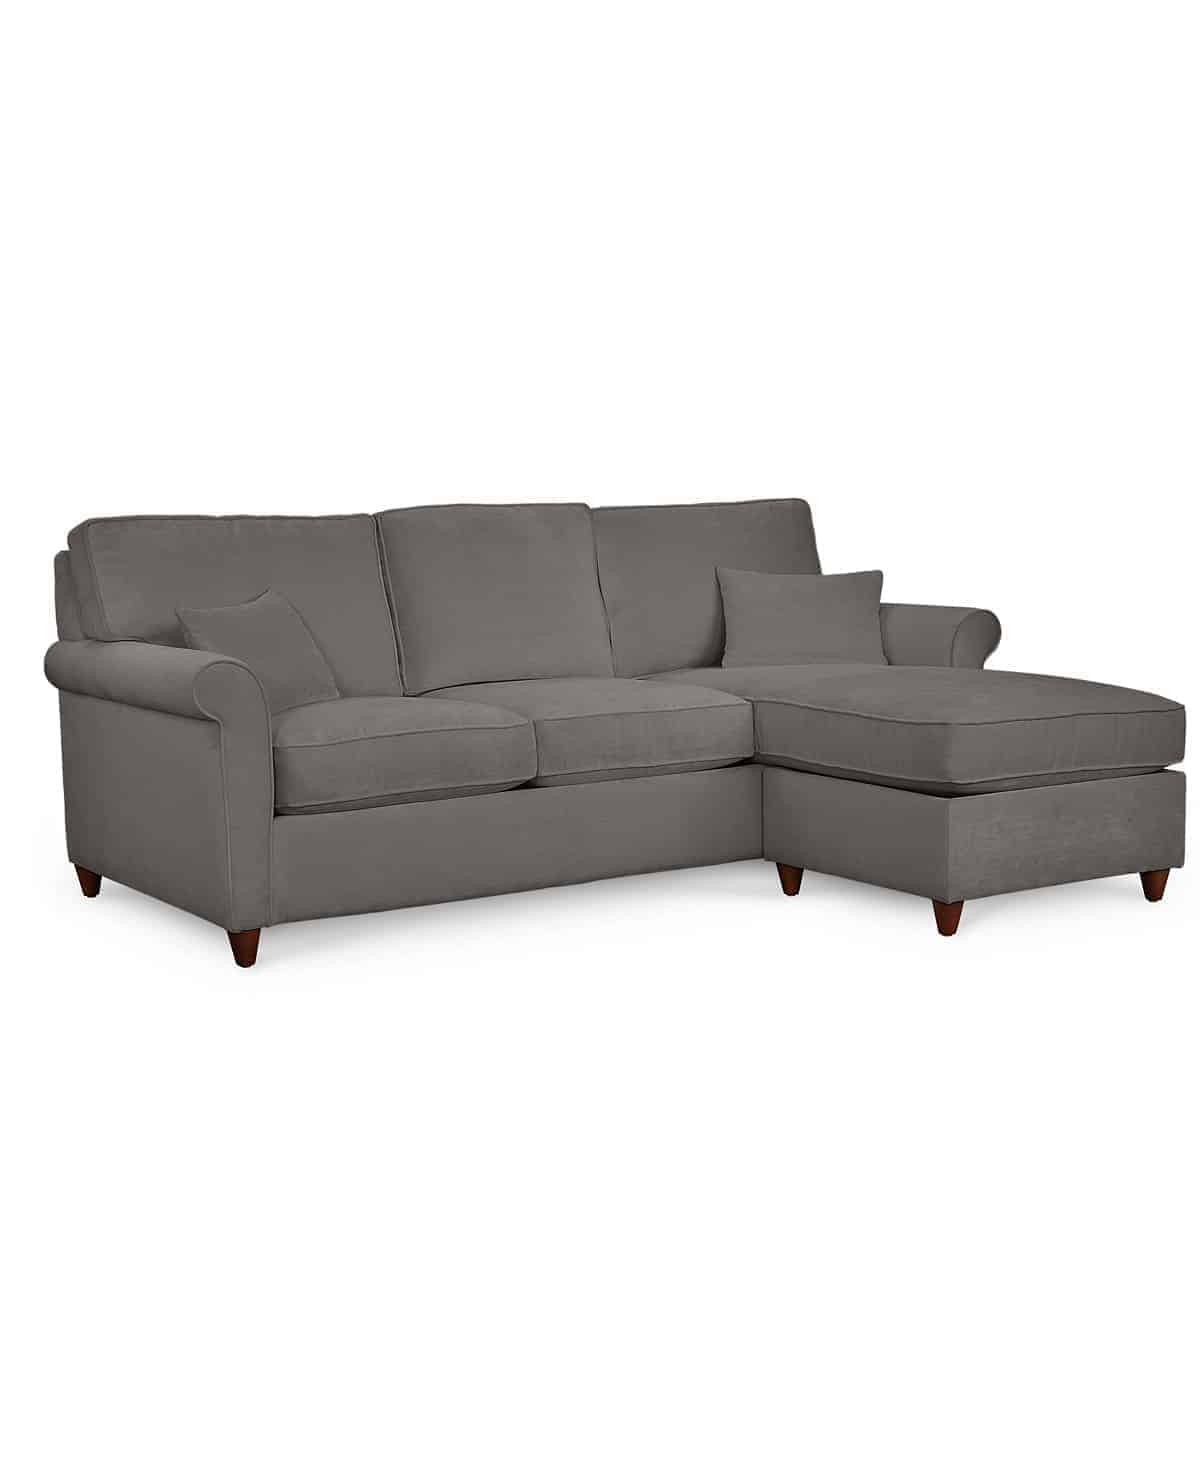 grey sectional sofa with rolled arms and an ottoman